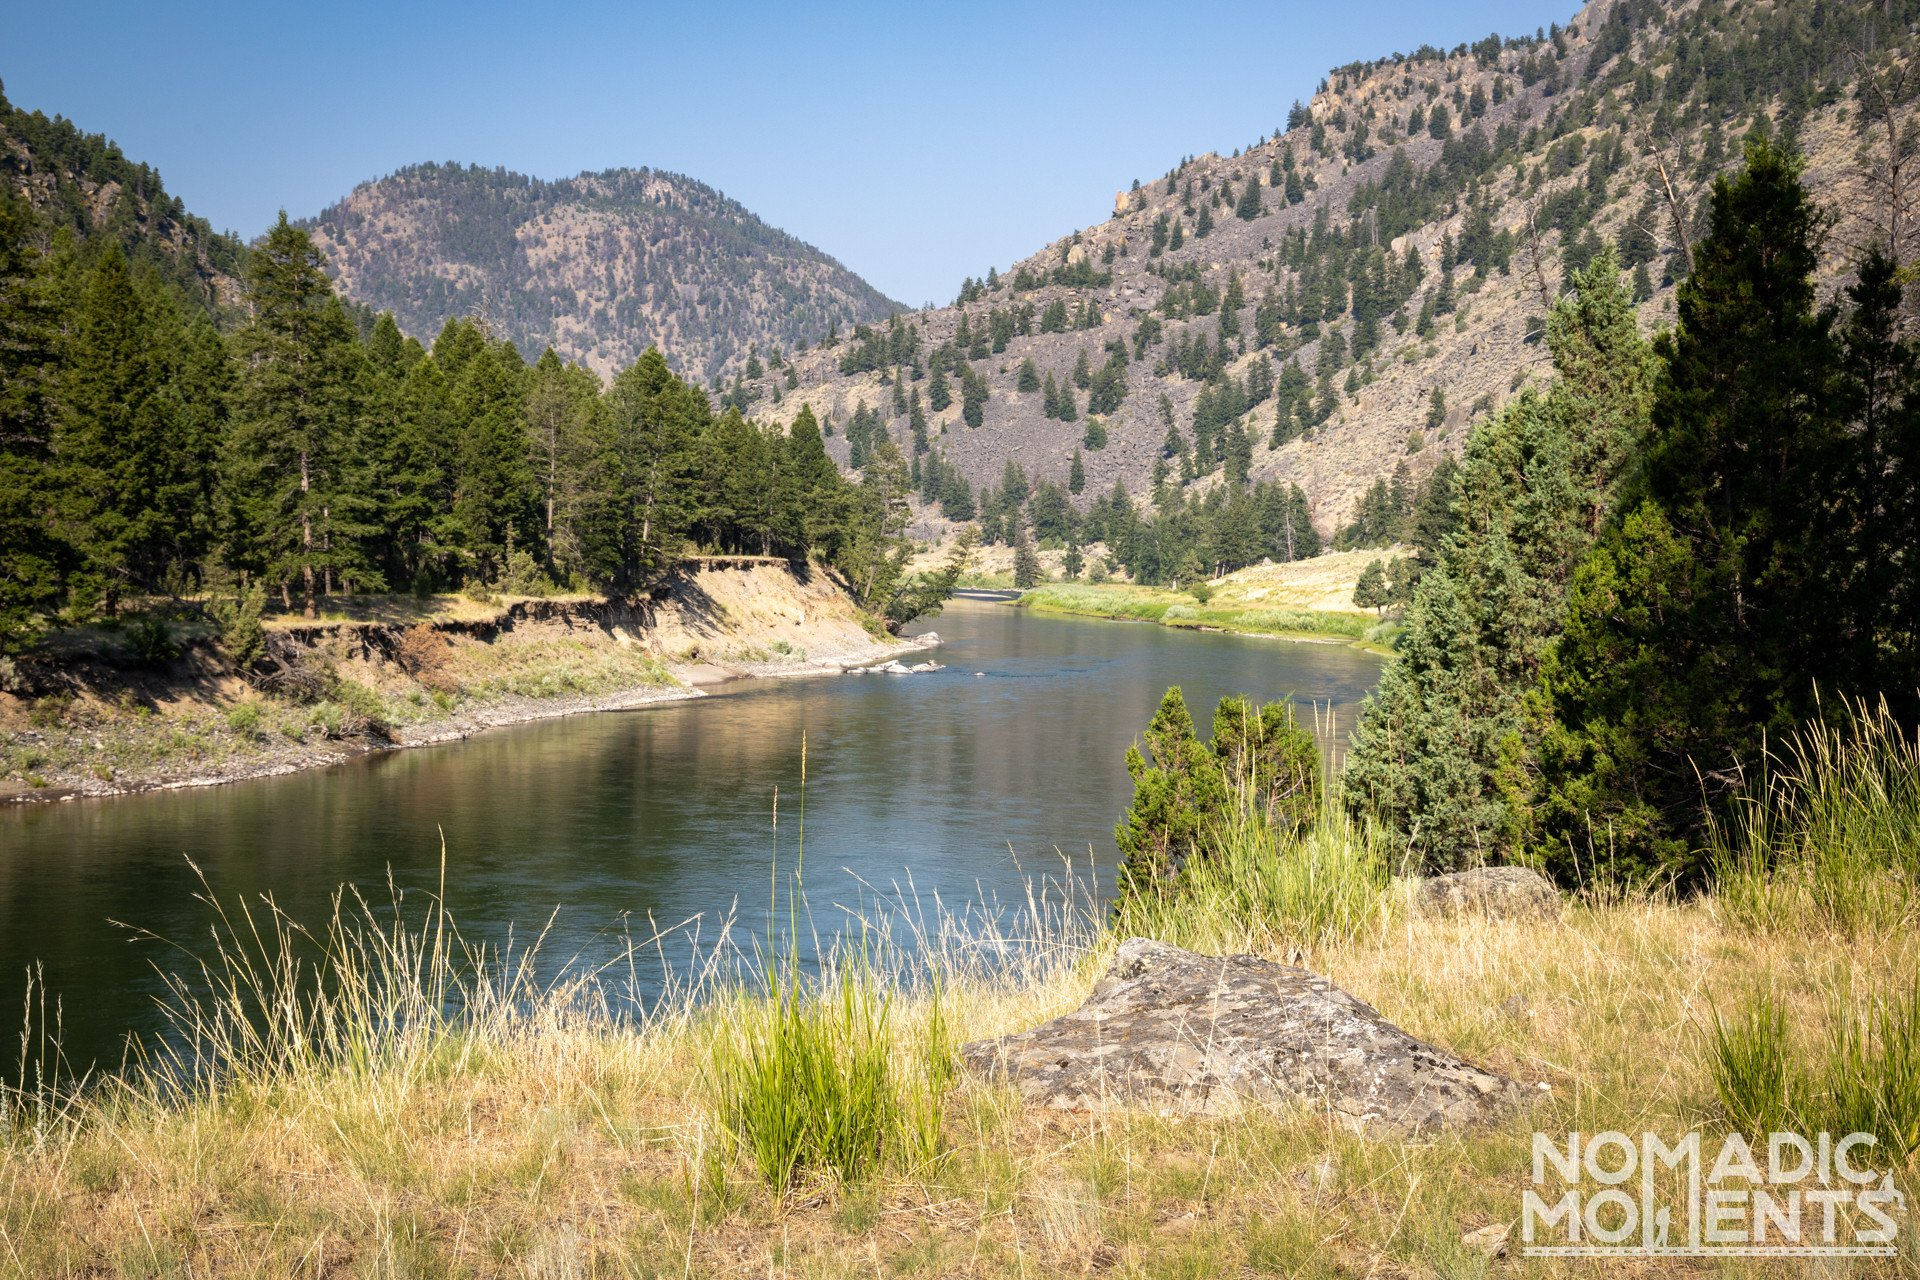 The Black Canyon of the Yellowstone River